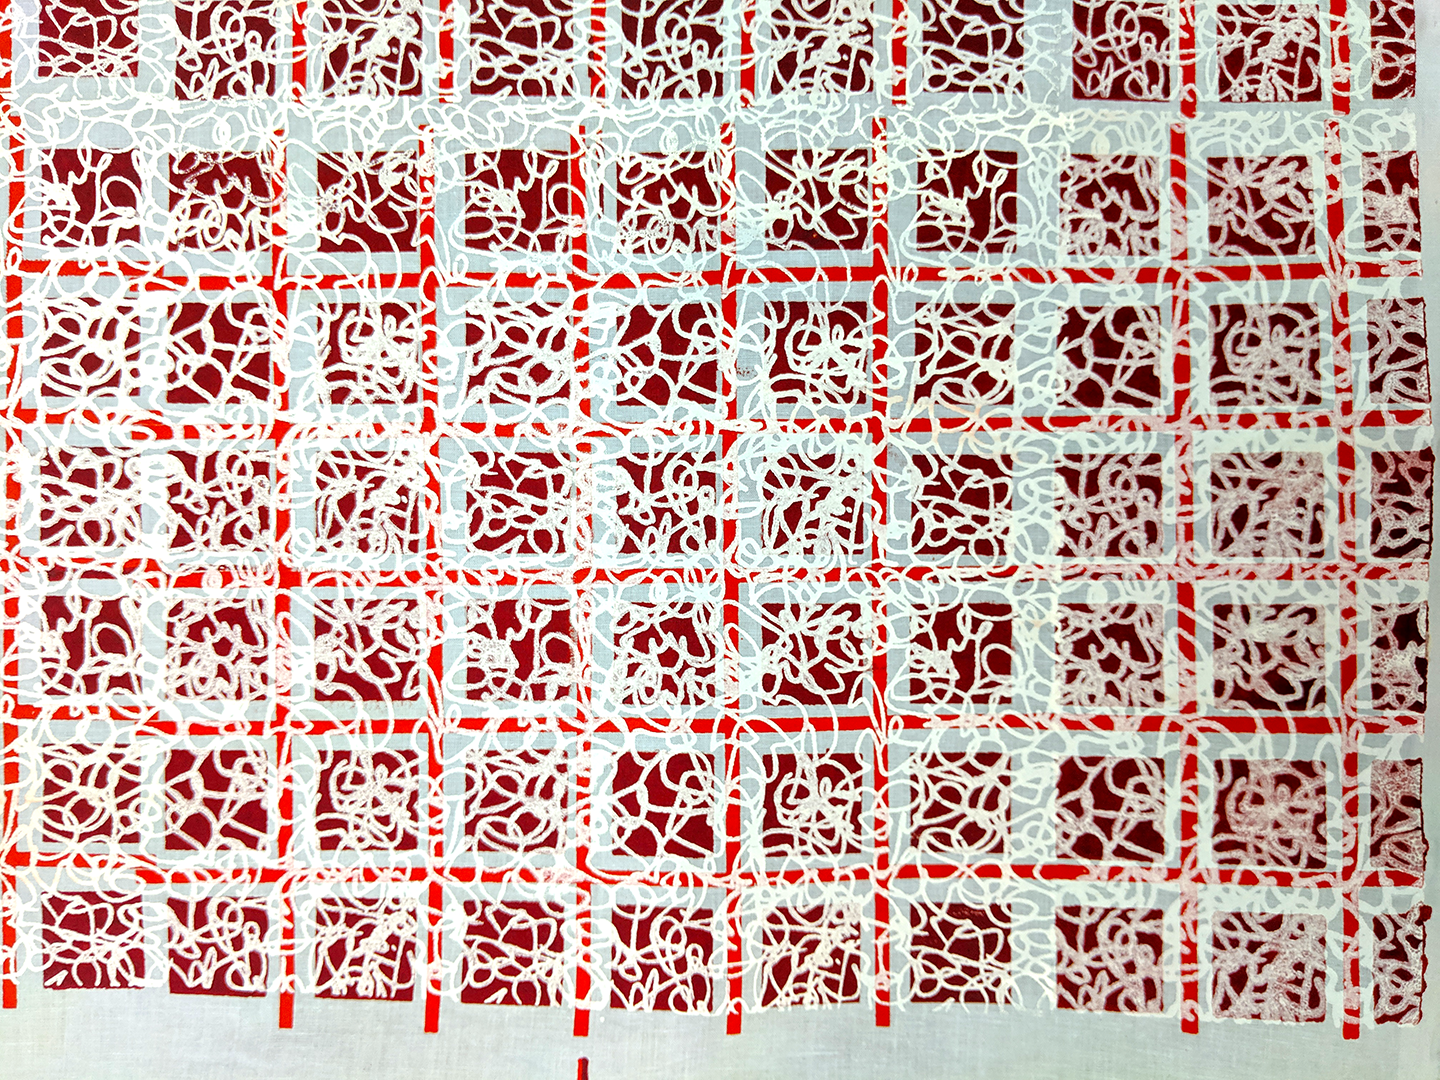 This is a twelve foot by four foot run of blue cotton fabric silkscreened with a red and white grid print.